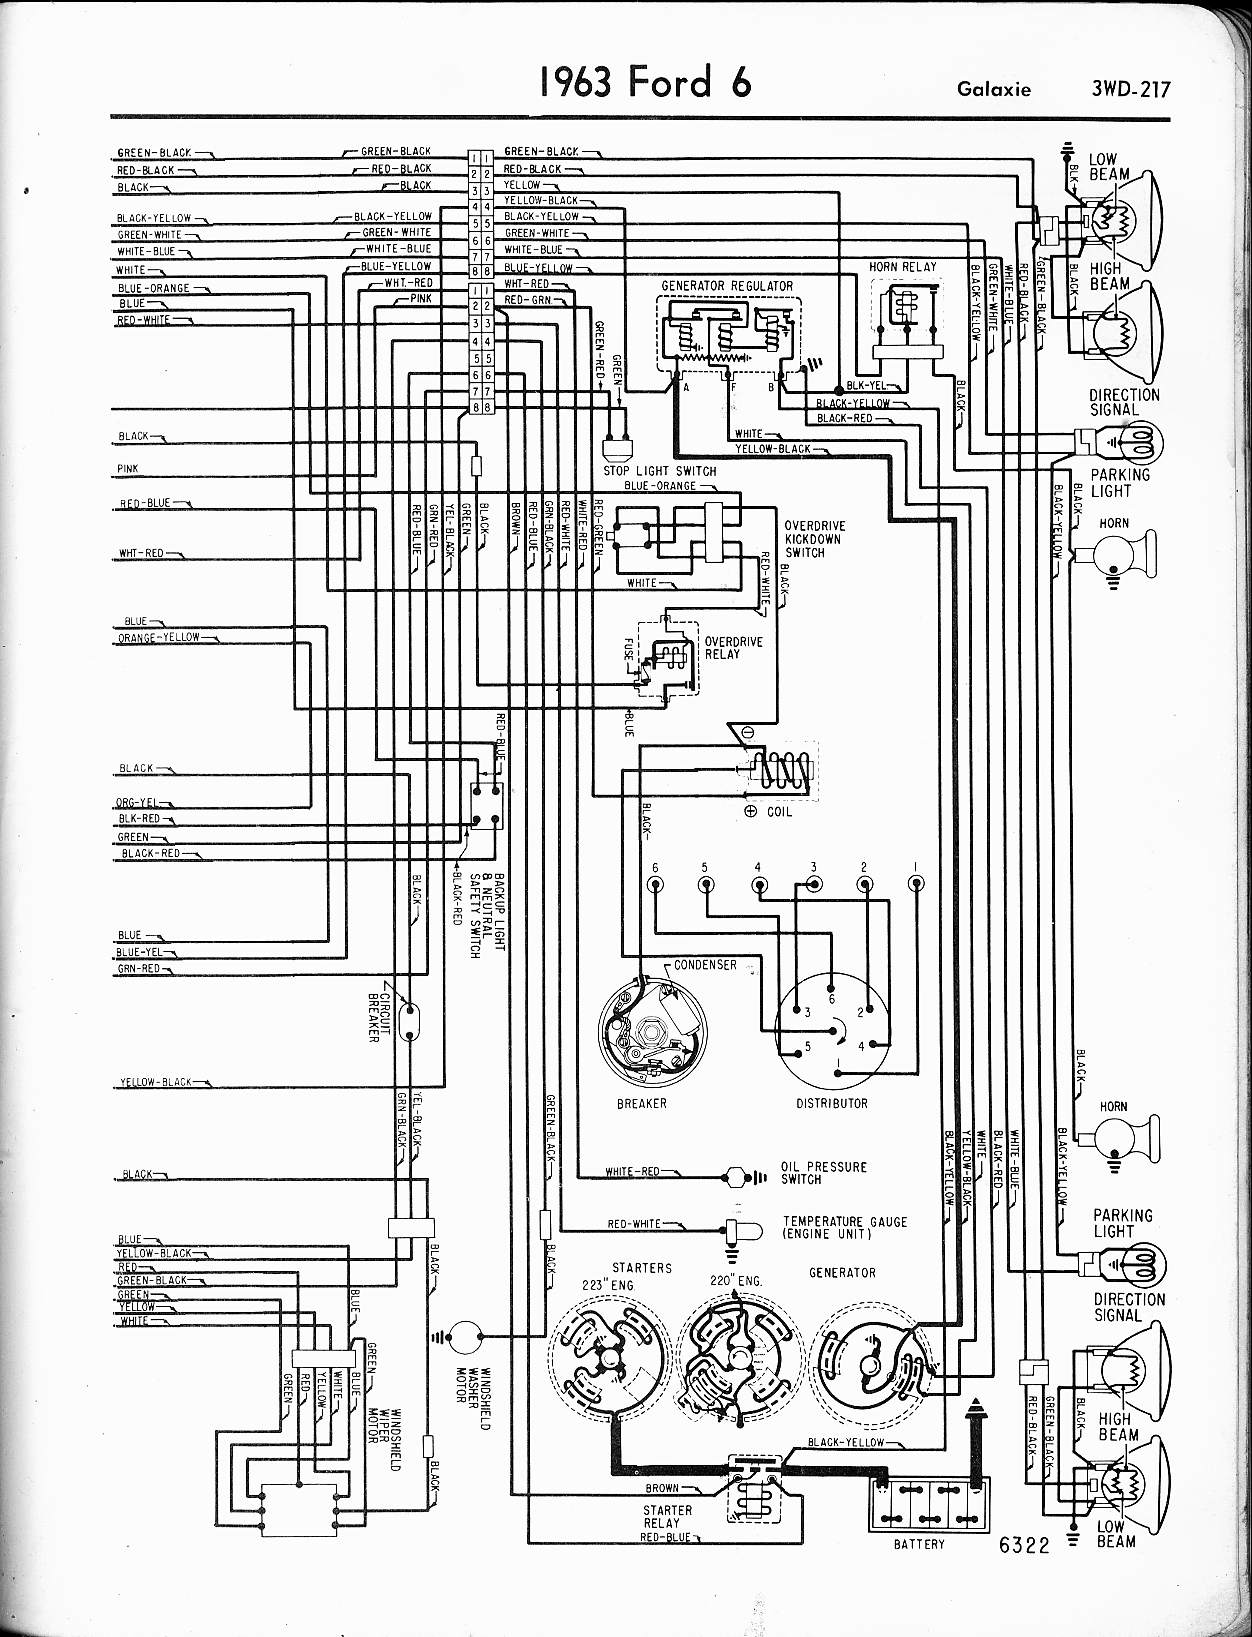 MWire5765 217?resize=665%2C869 62 galaxie underhood wiring diagram 62 wiring diagrams collection  at eliteediting.co